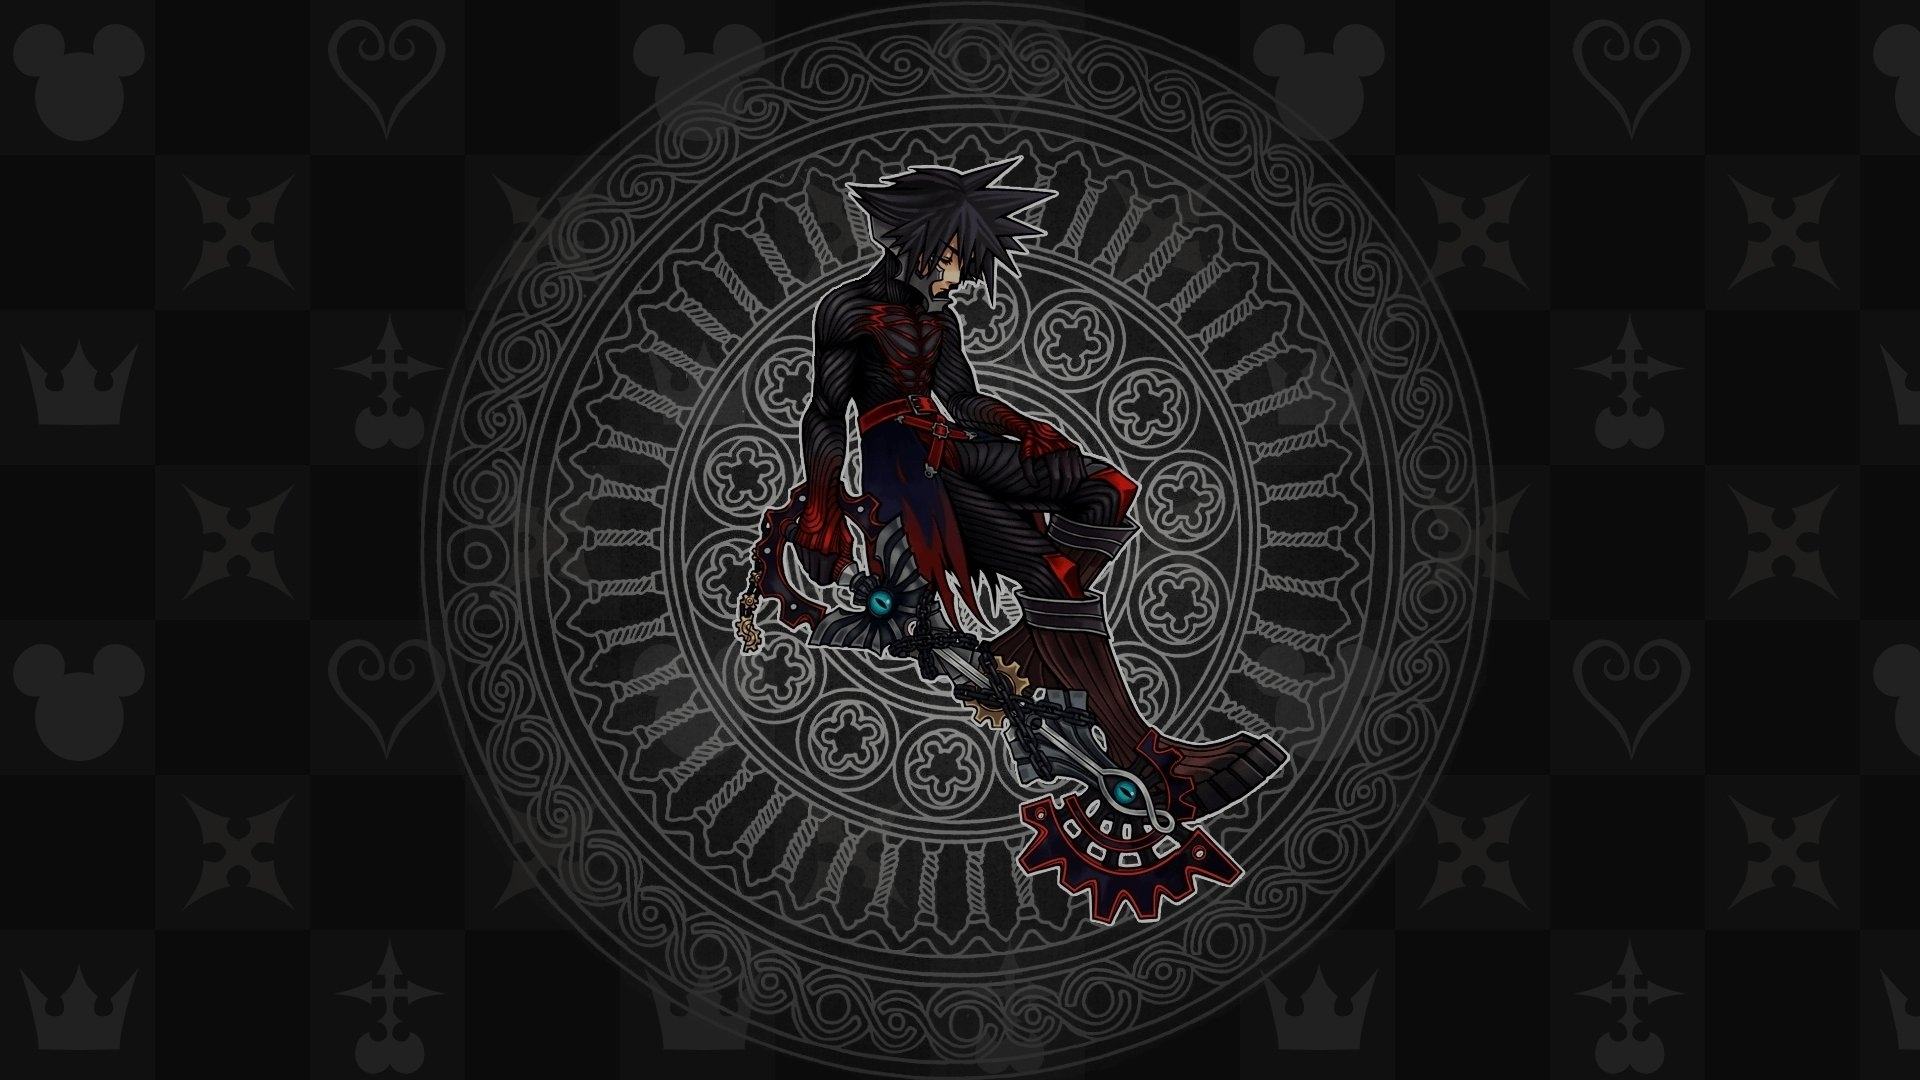 86 kingdom hearts hd wallpapers | background images - wallpaper abyss